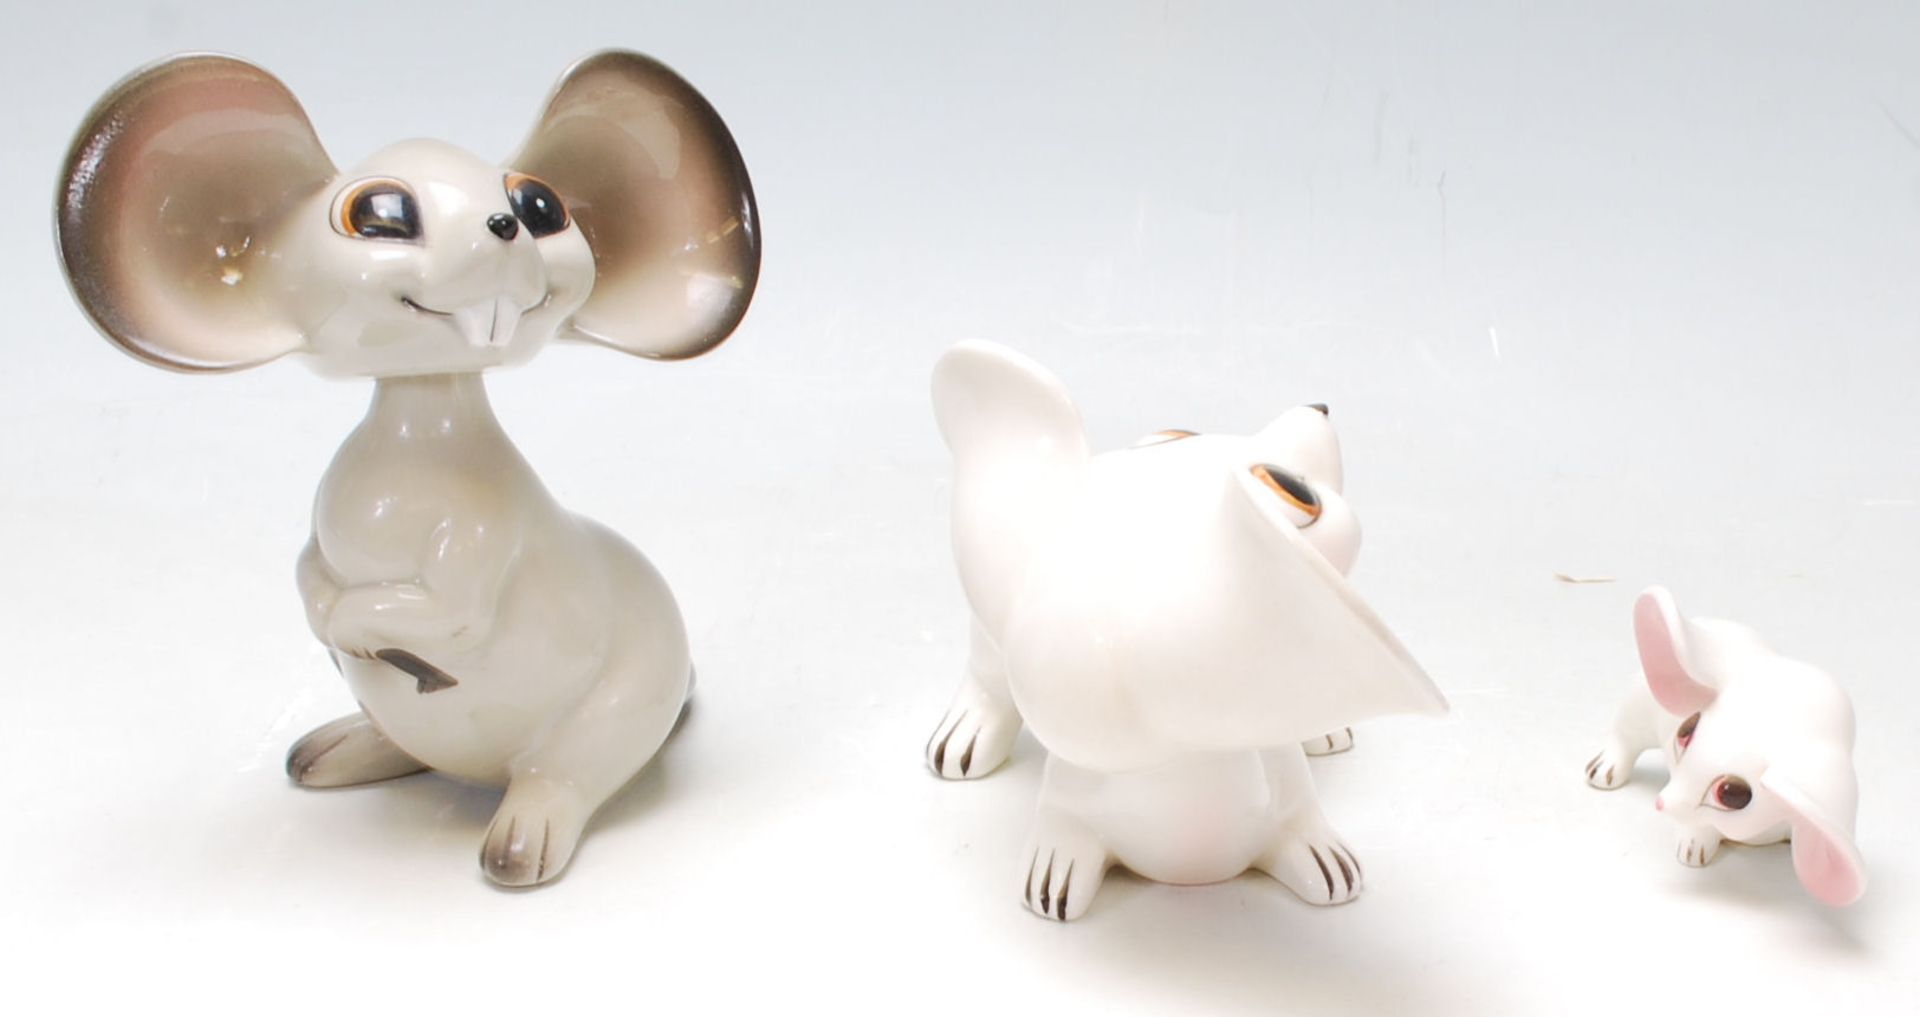 Los 16 - A group of 1960's vintage German ceramic mice comprising of a pair of white and pink mice sitting on